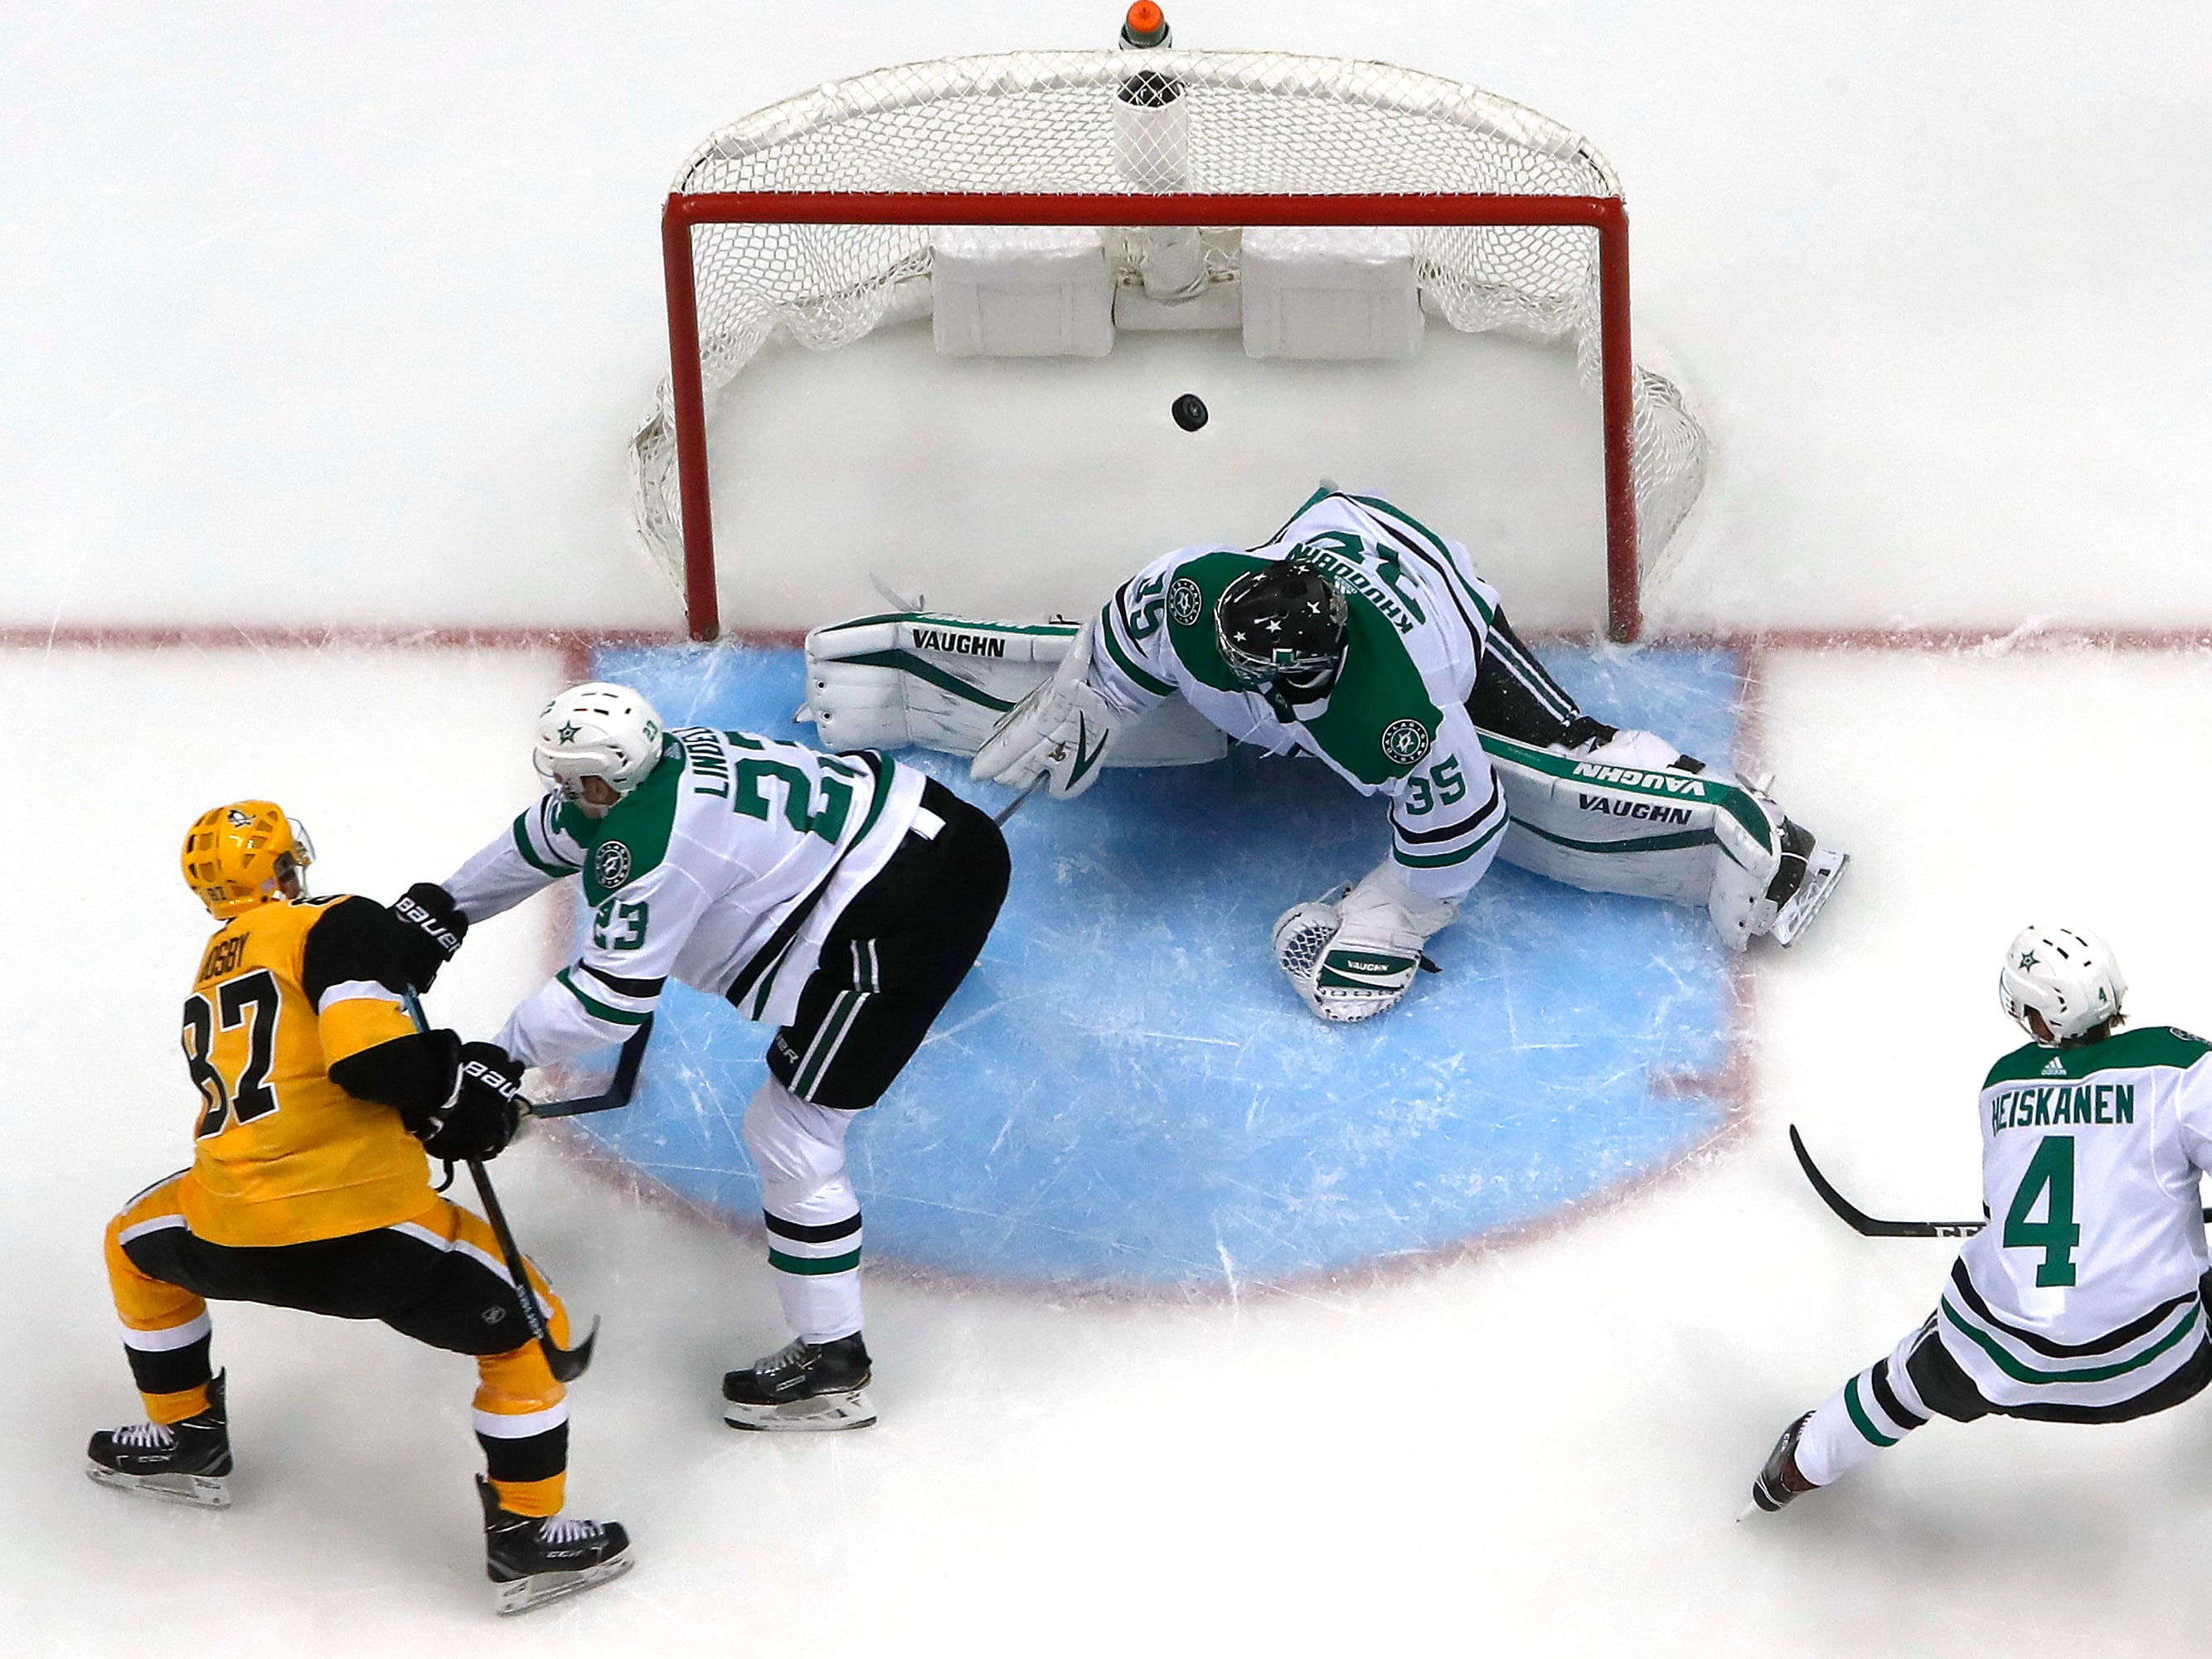 Nov. 21: Pittsburgh Penguins star Sidney Crosby, left, scores off a rebound against Dallas Stars goaltender Anton Khudobin. He took an in-tight backhander, kicked the rebound to his forehand and scored.